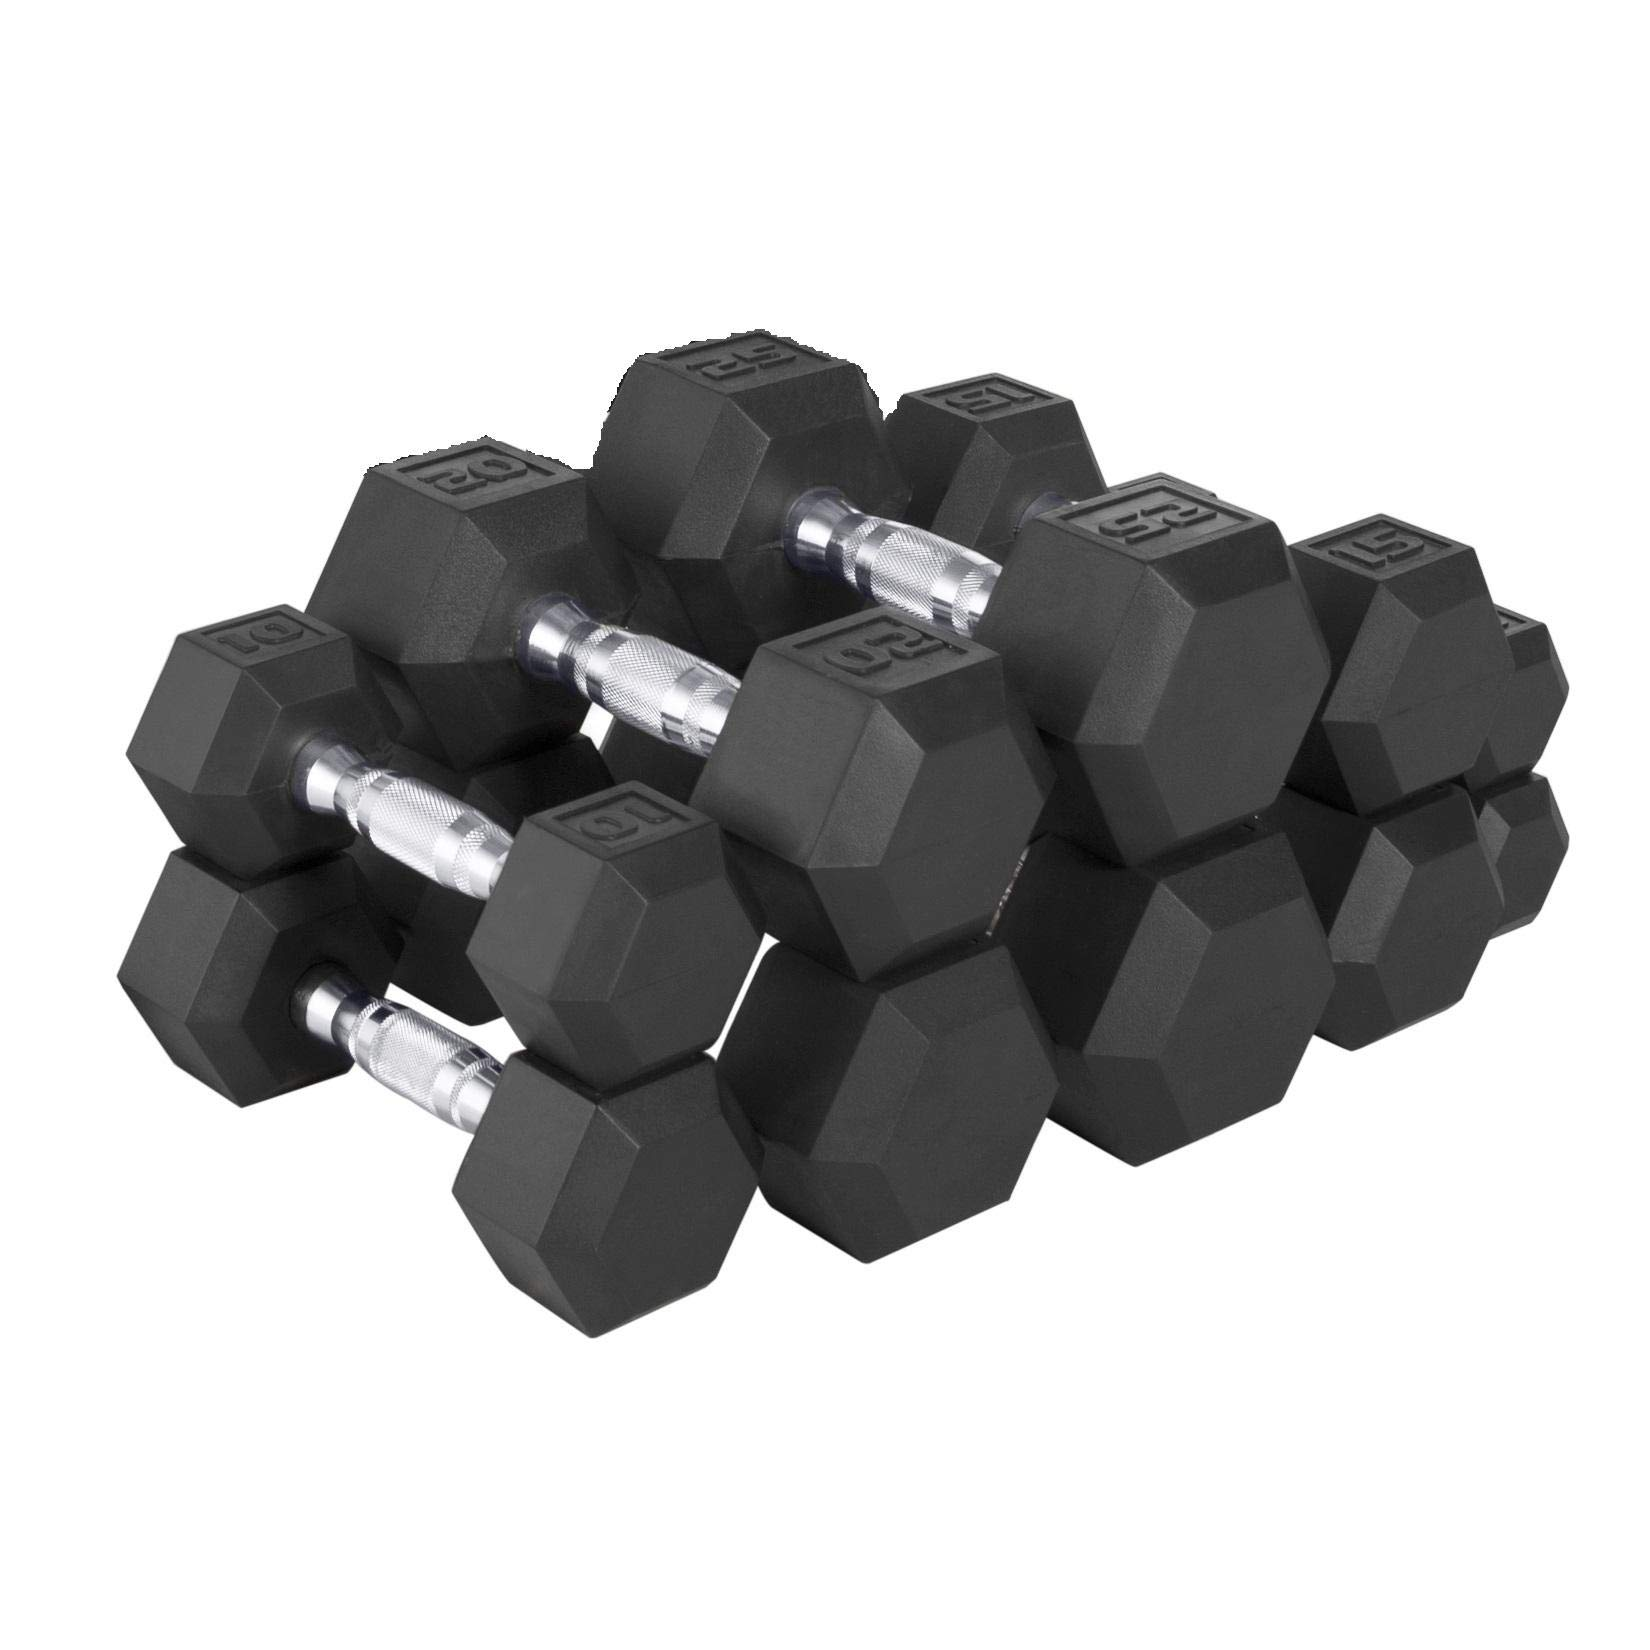 CAP Barbell 150-lb Rubber Hex Dumbbell Weight Set, Black, Large (SDRS-150-2), Large